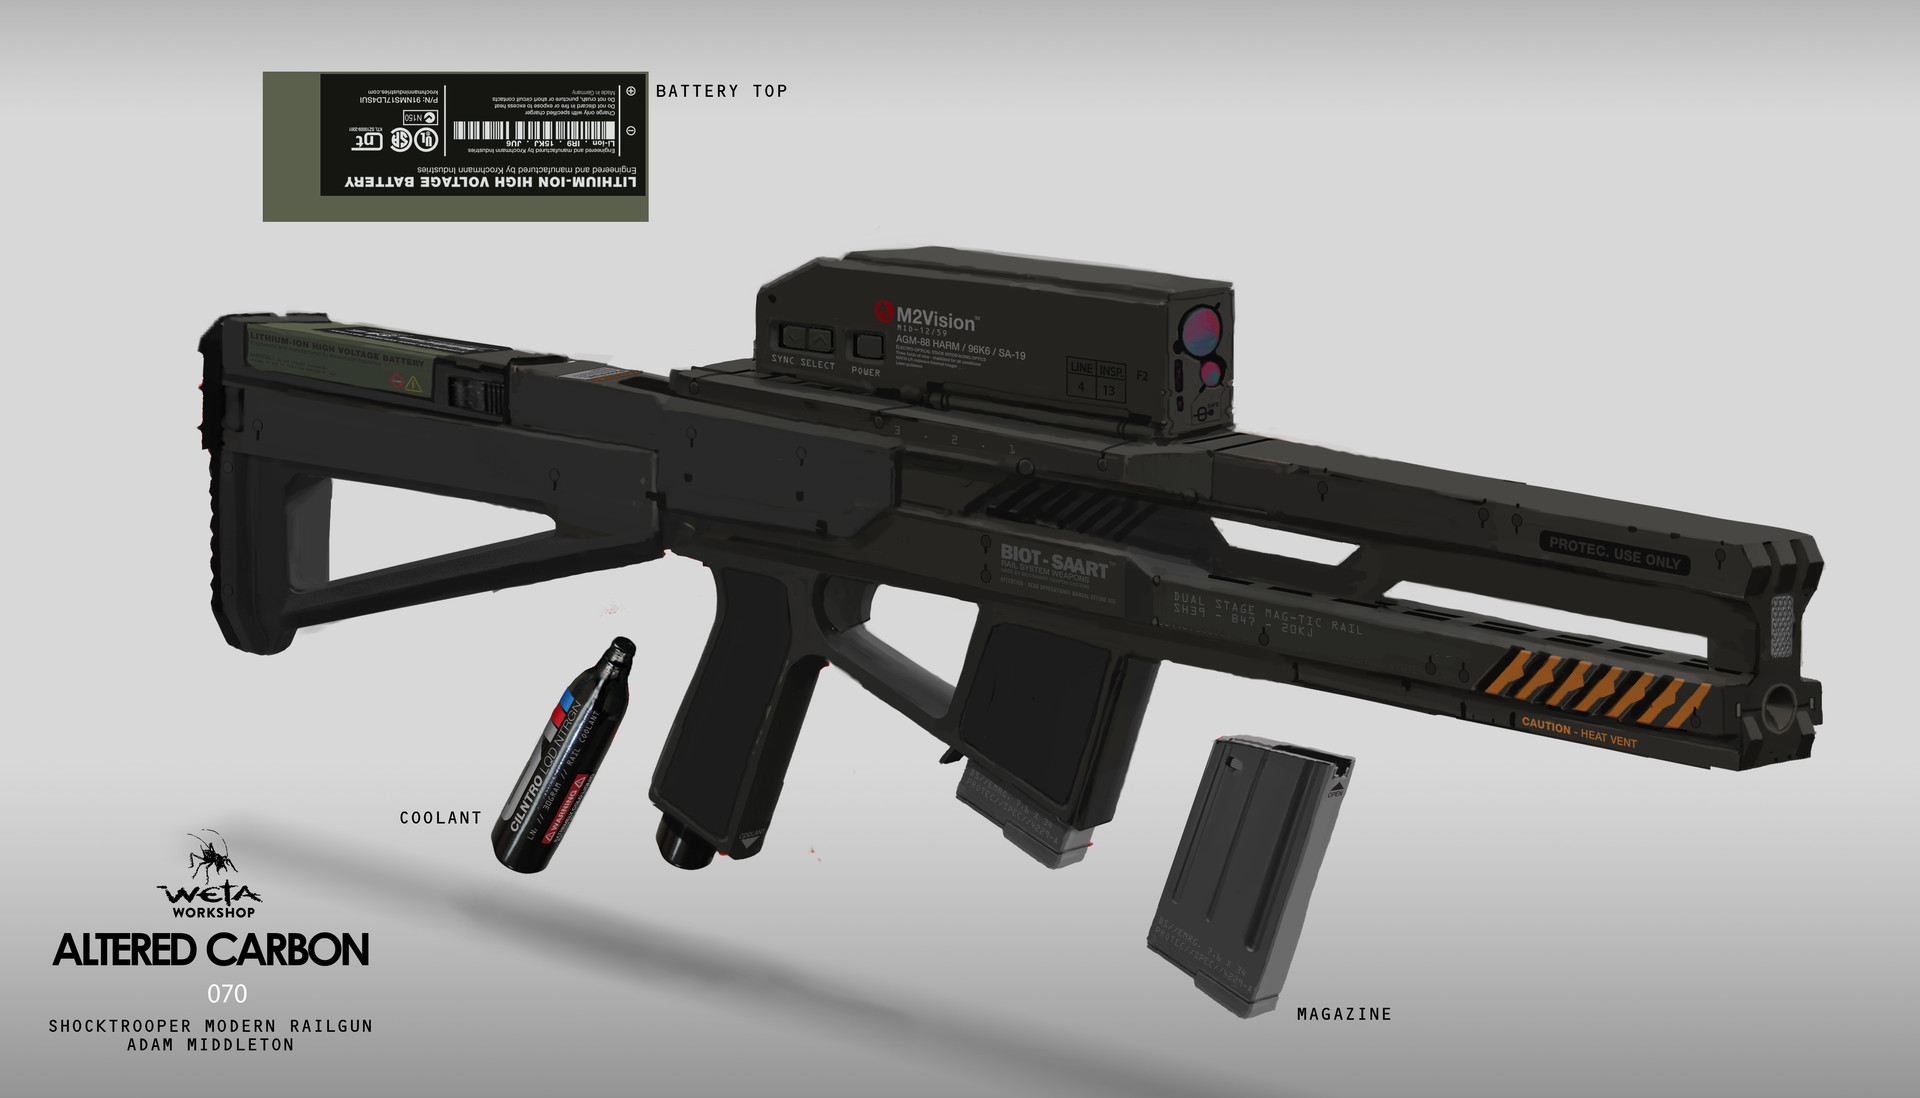 Shock Trooper Rifle - Artist: Adam Middleton